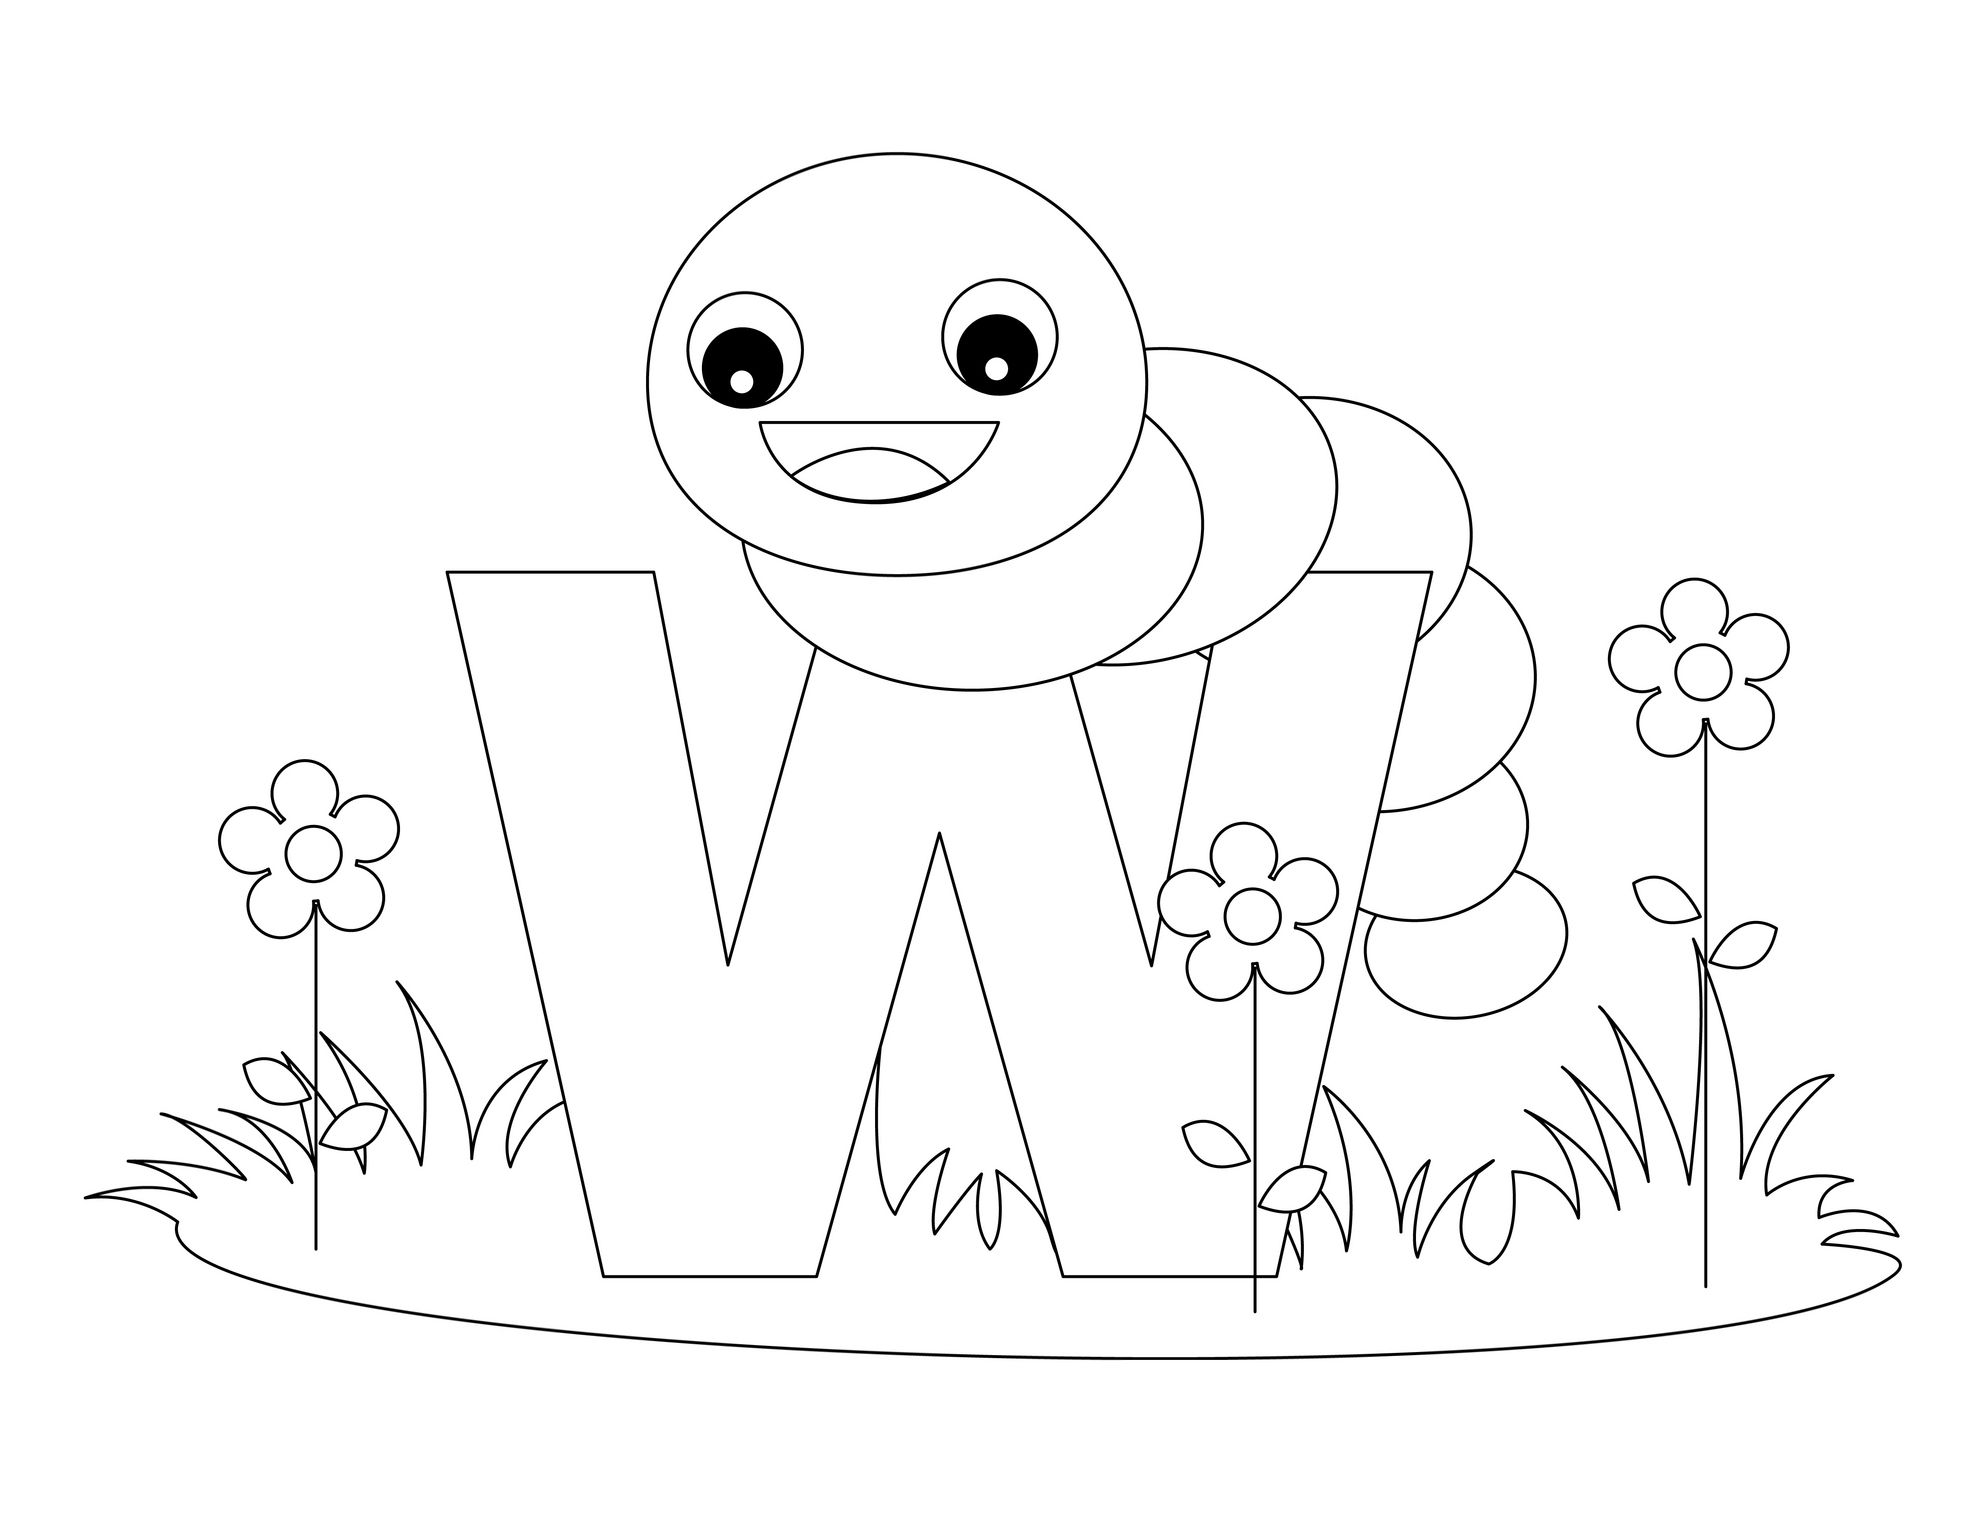 Animal Alphabet Letter W Is For Worm Alphabet Coloring Pages Coloring Letters Letter W Crafts [ 1527 x 1963 Pixel ]